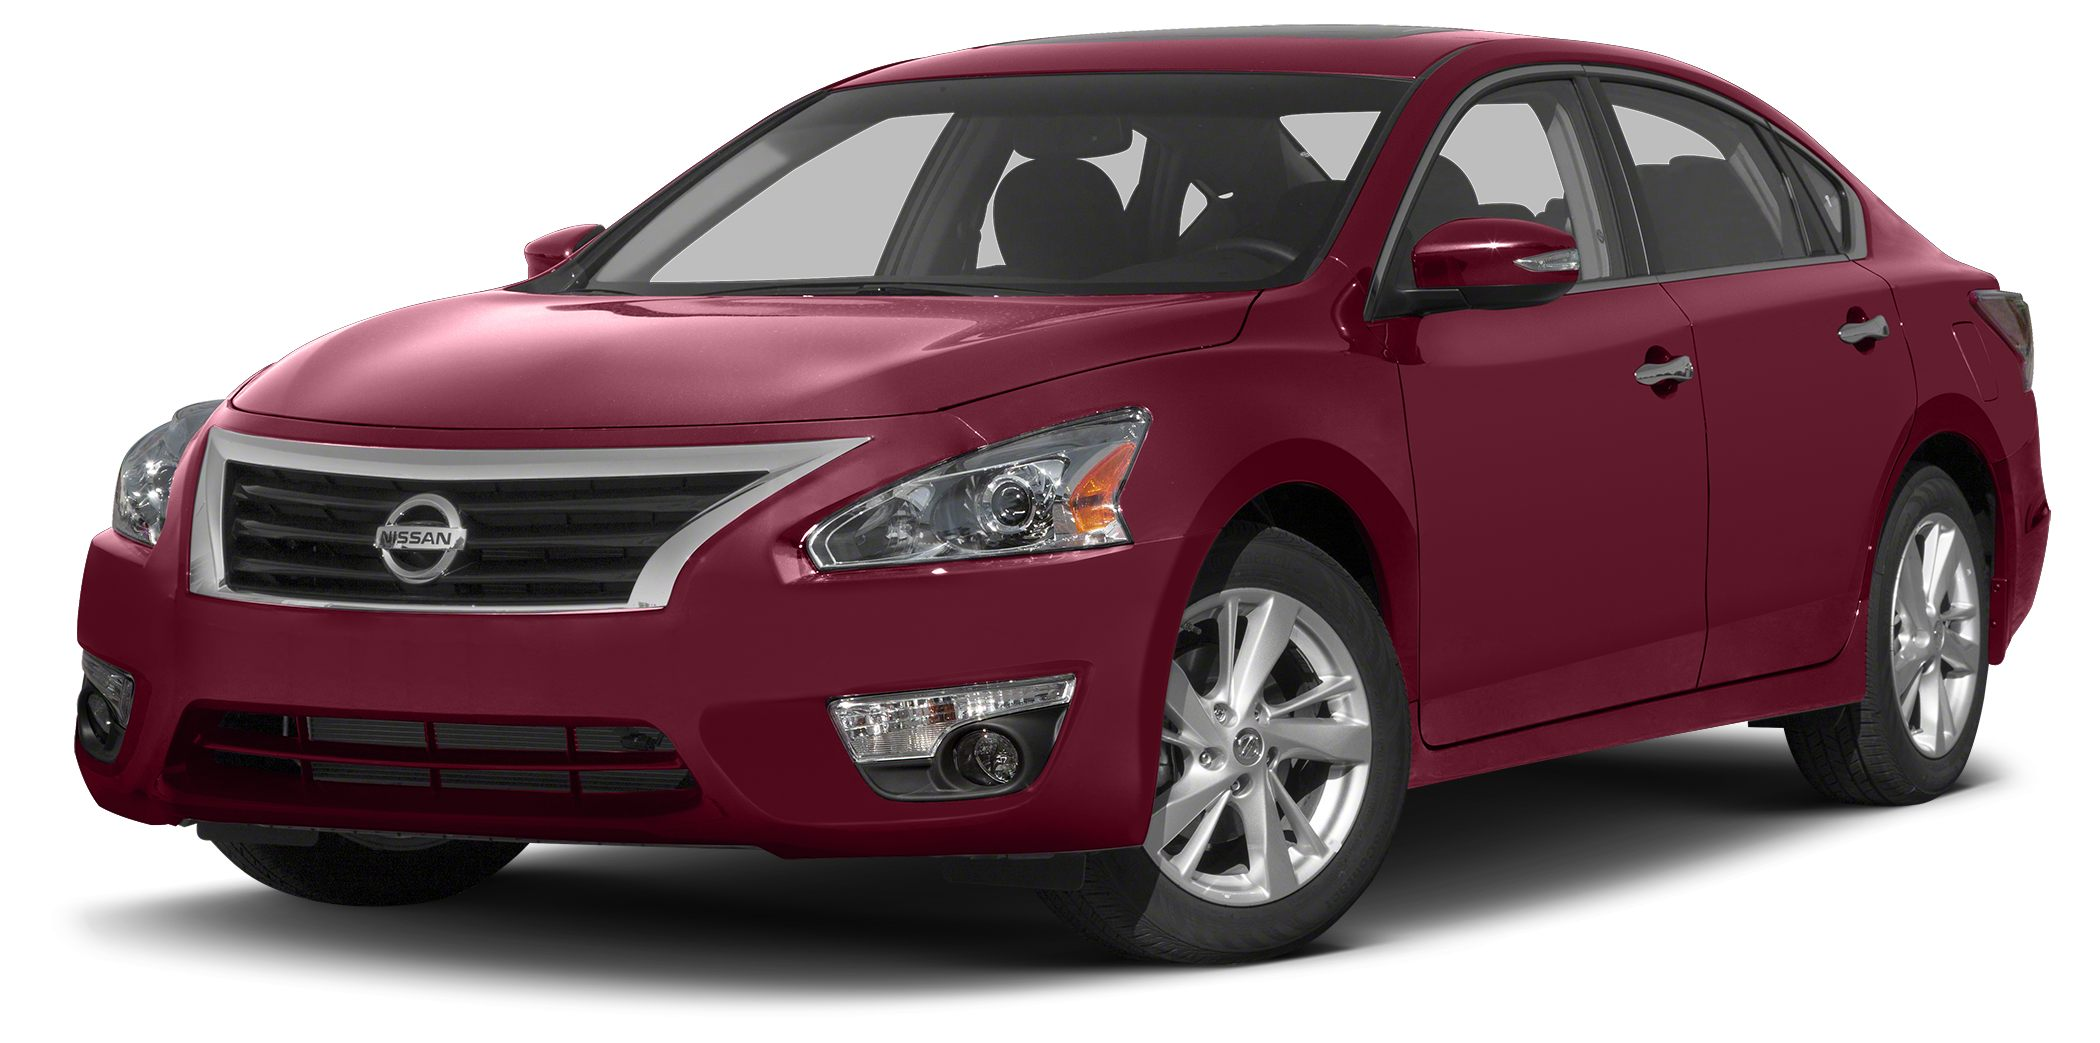 2013 Nissan Altima 35 SL Miles 26811Color Cayenne Red Metallic Stock LX9202A VIN 1N4BL3AP9D